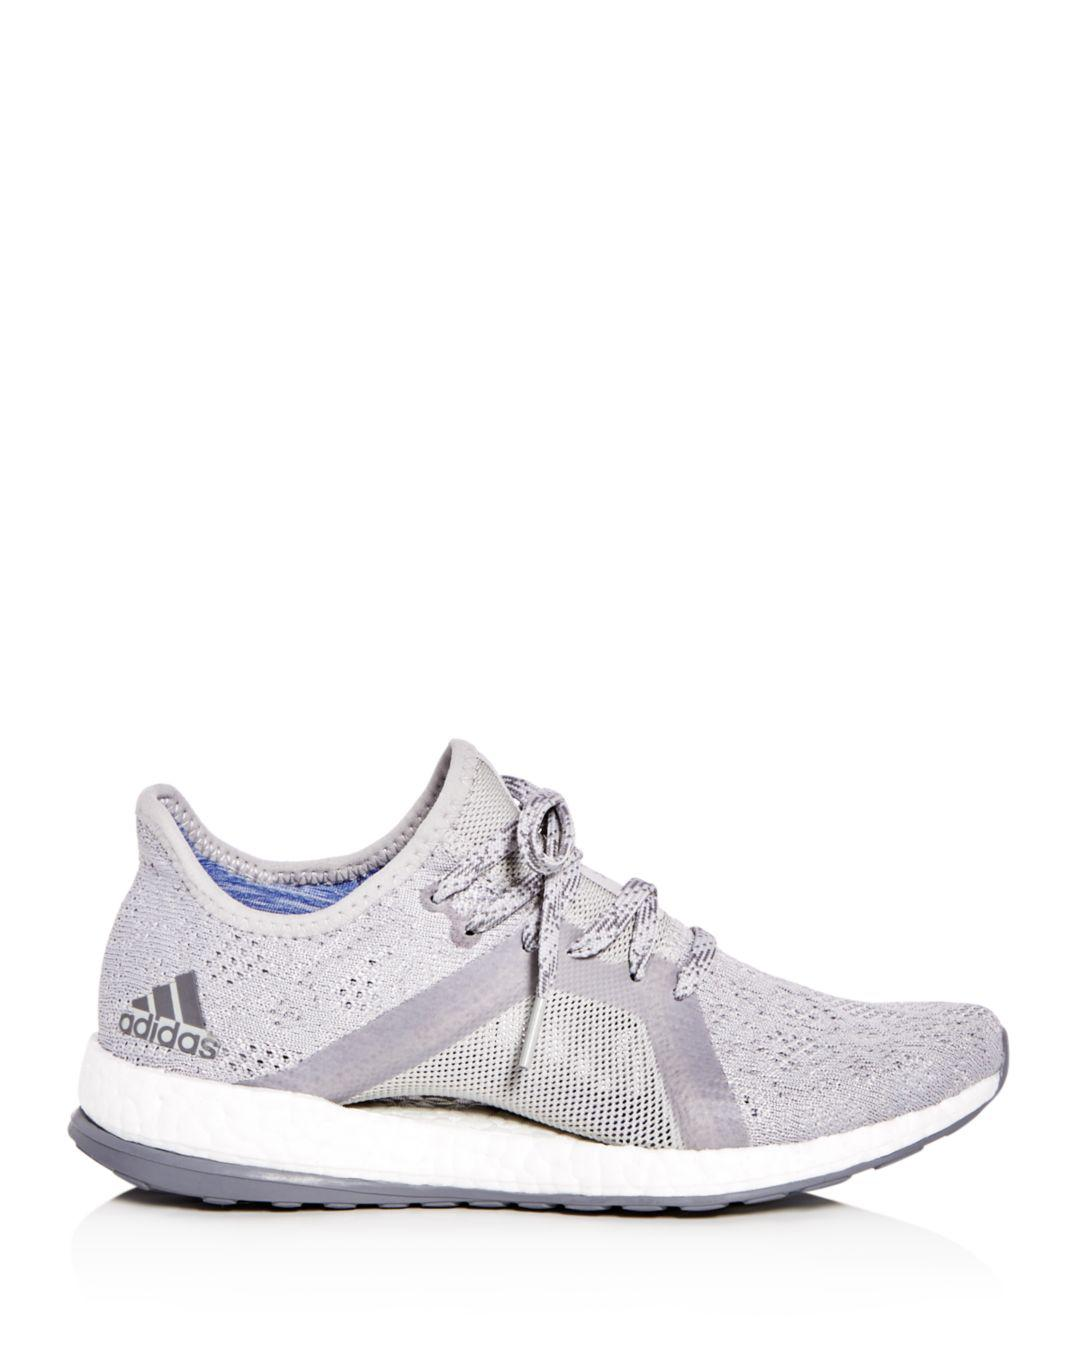 04aaad6472e67 Lyst - adidas Women s Pureboost X Element Knit Lace Up Sneakers in Gray